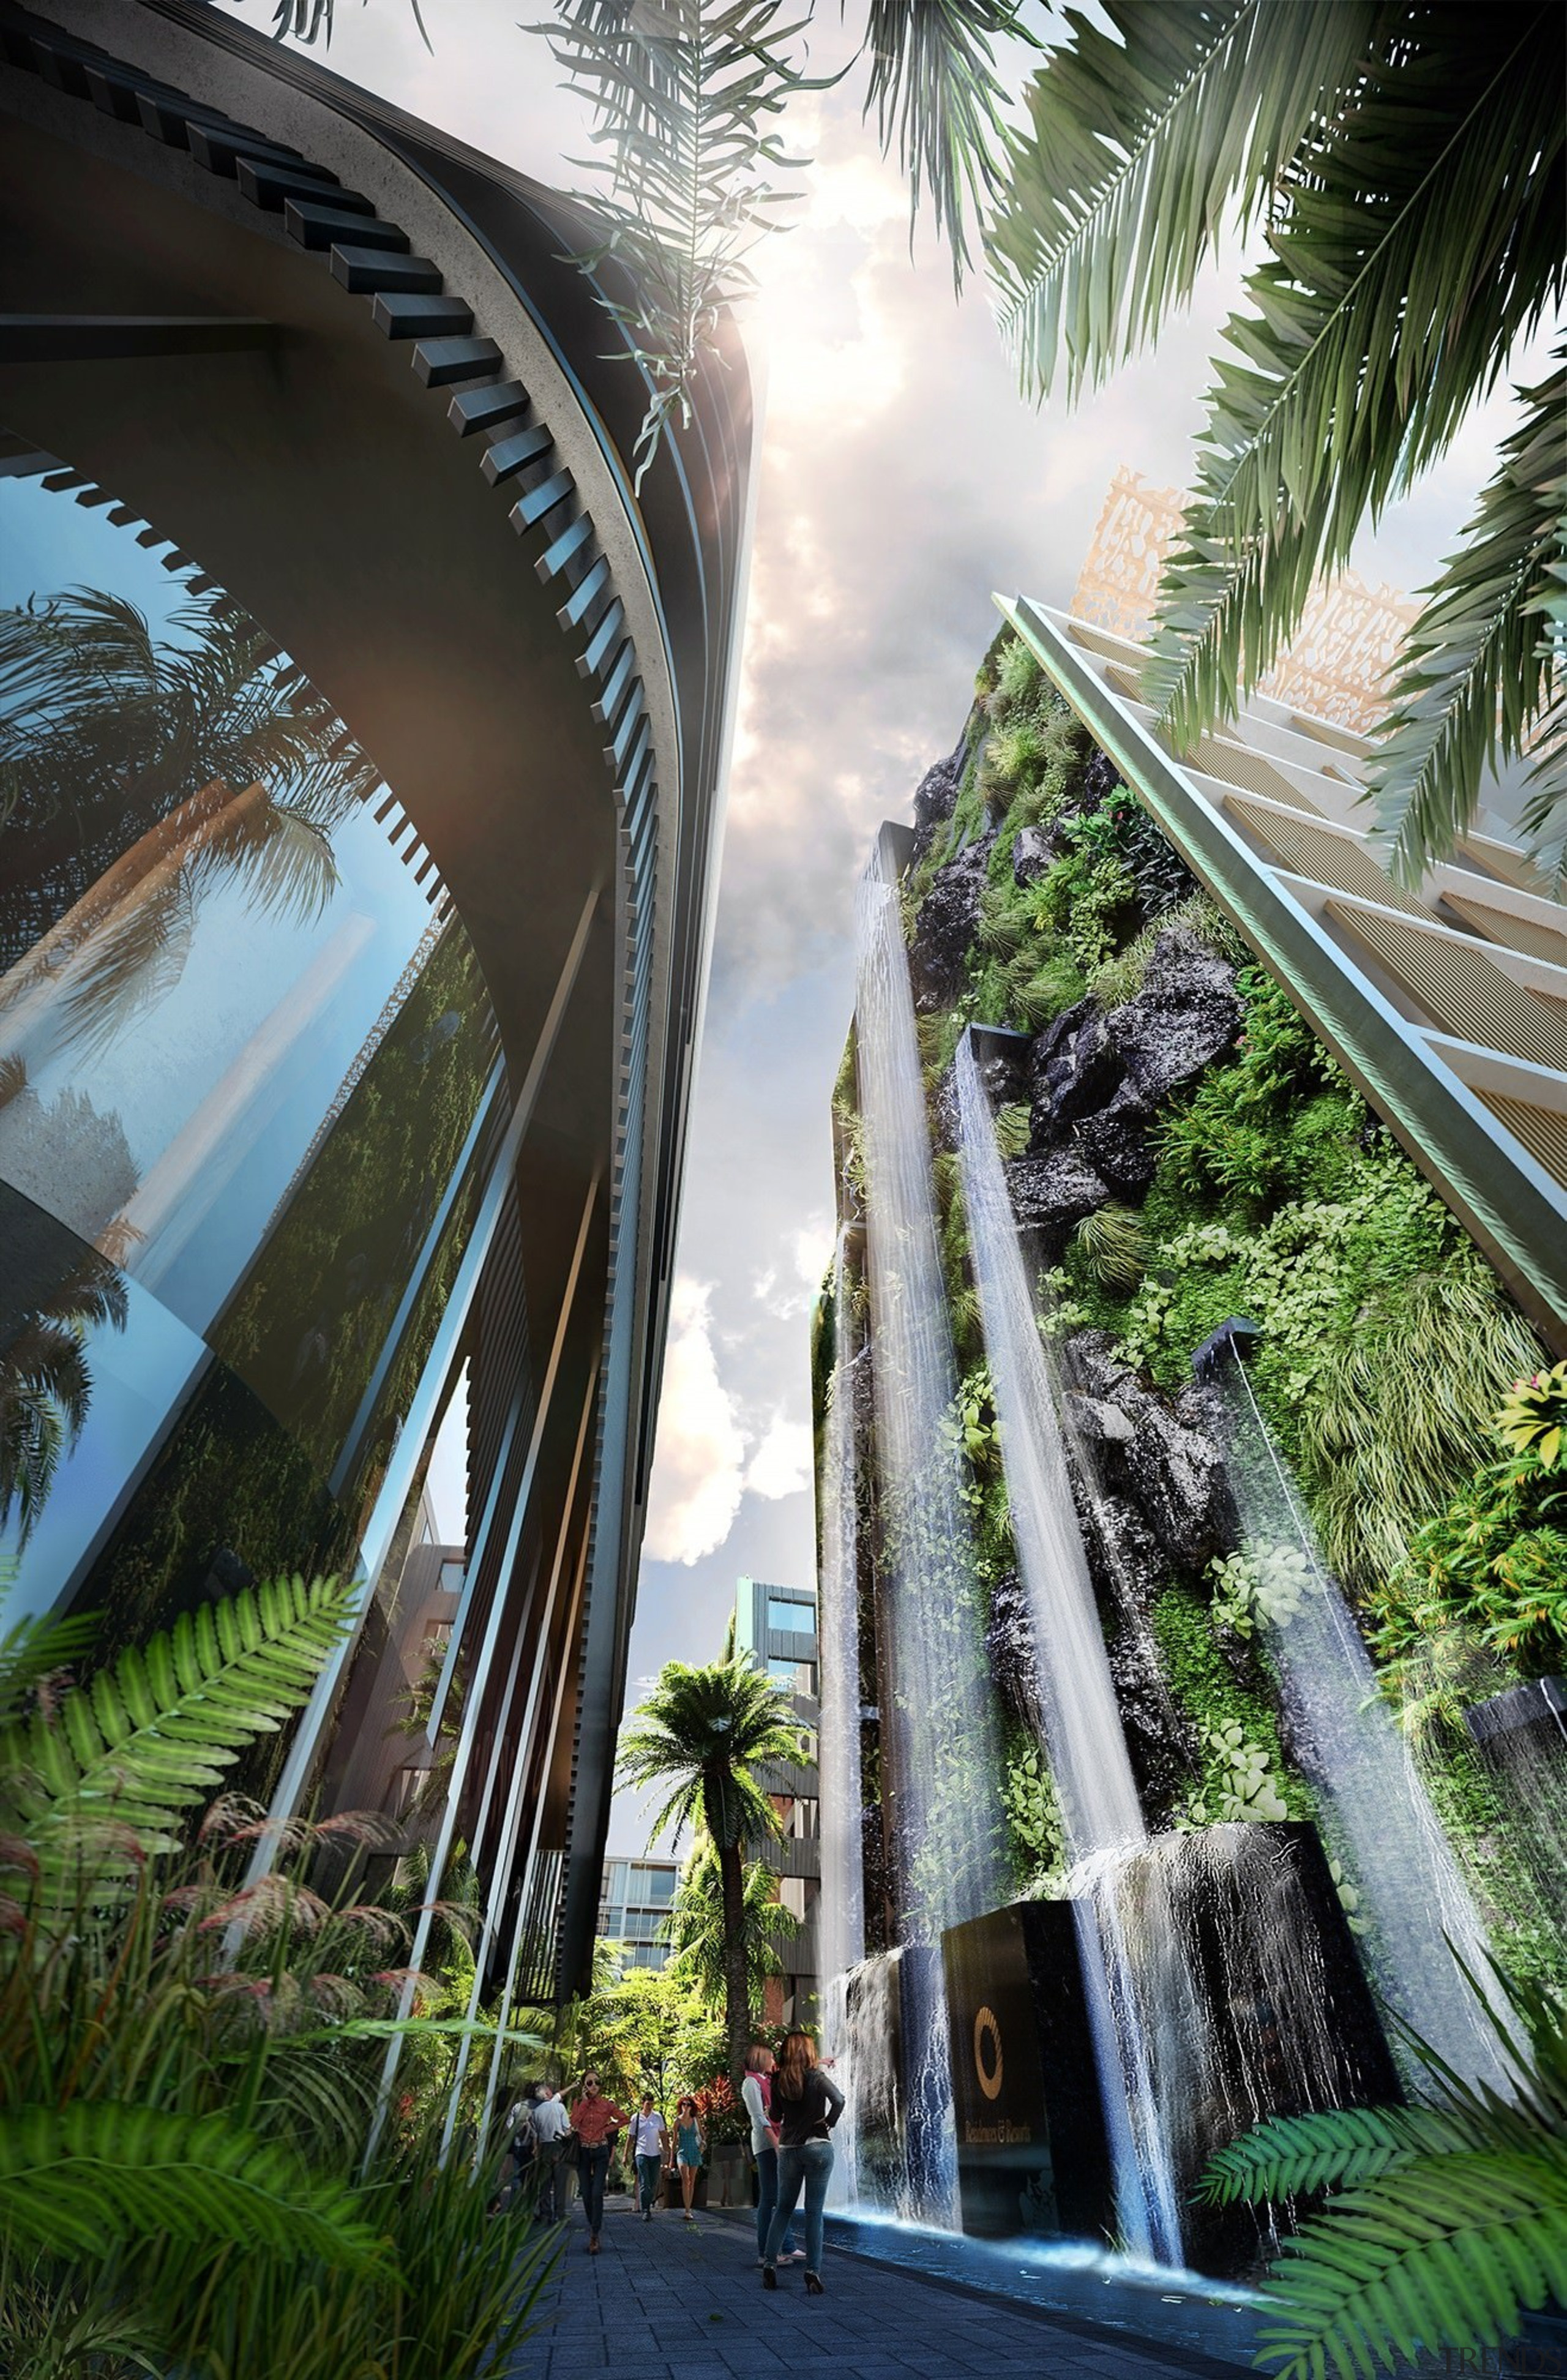 A concept of the finished waterfall. - A architecture, arecales, bridge, building, metropolitan area, palm tree, plant, sky, tree, water, black